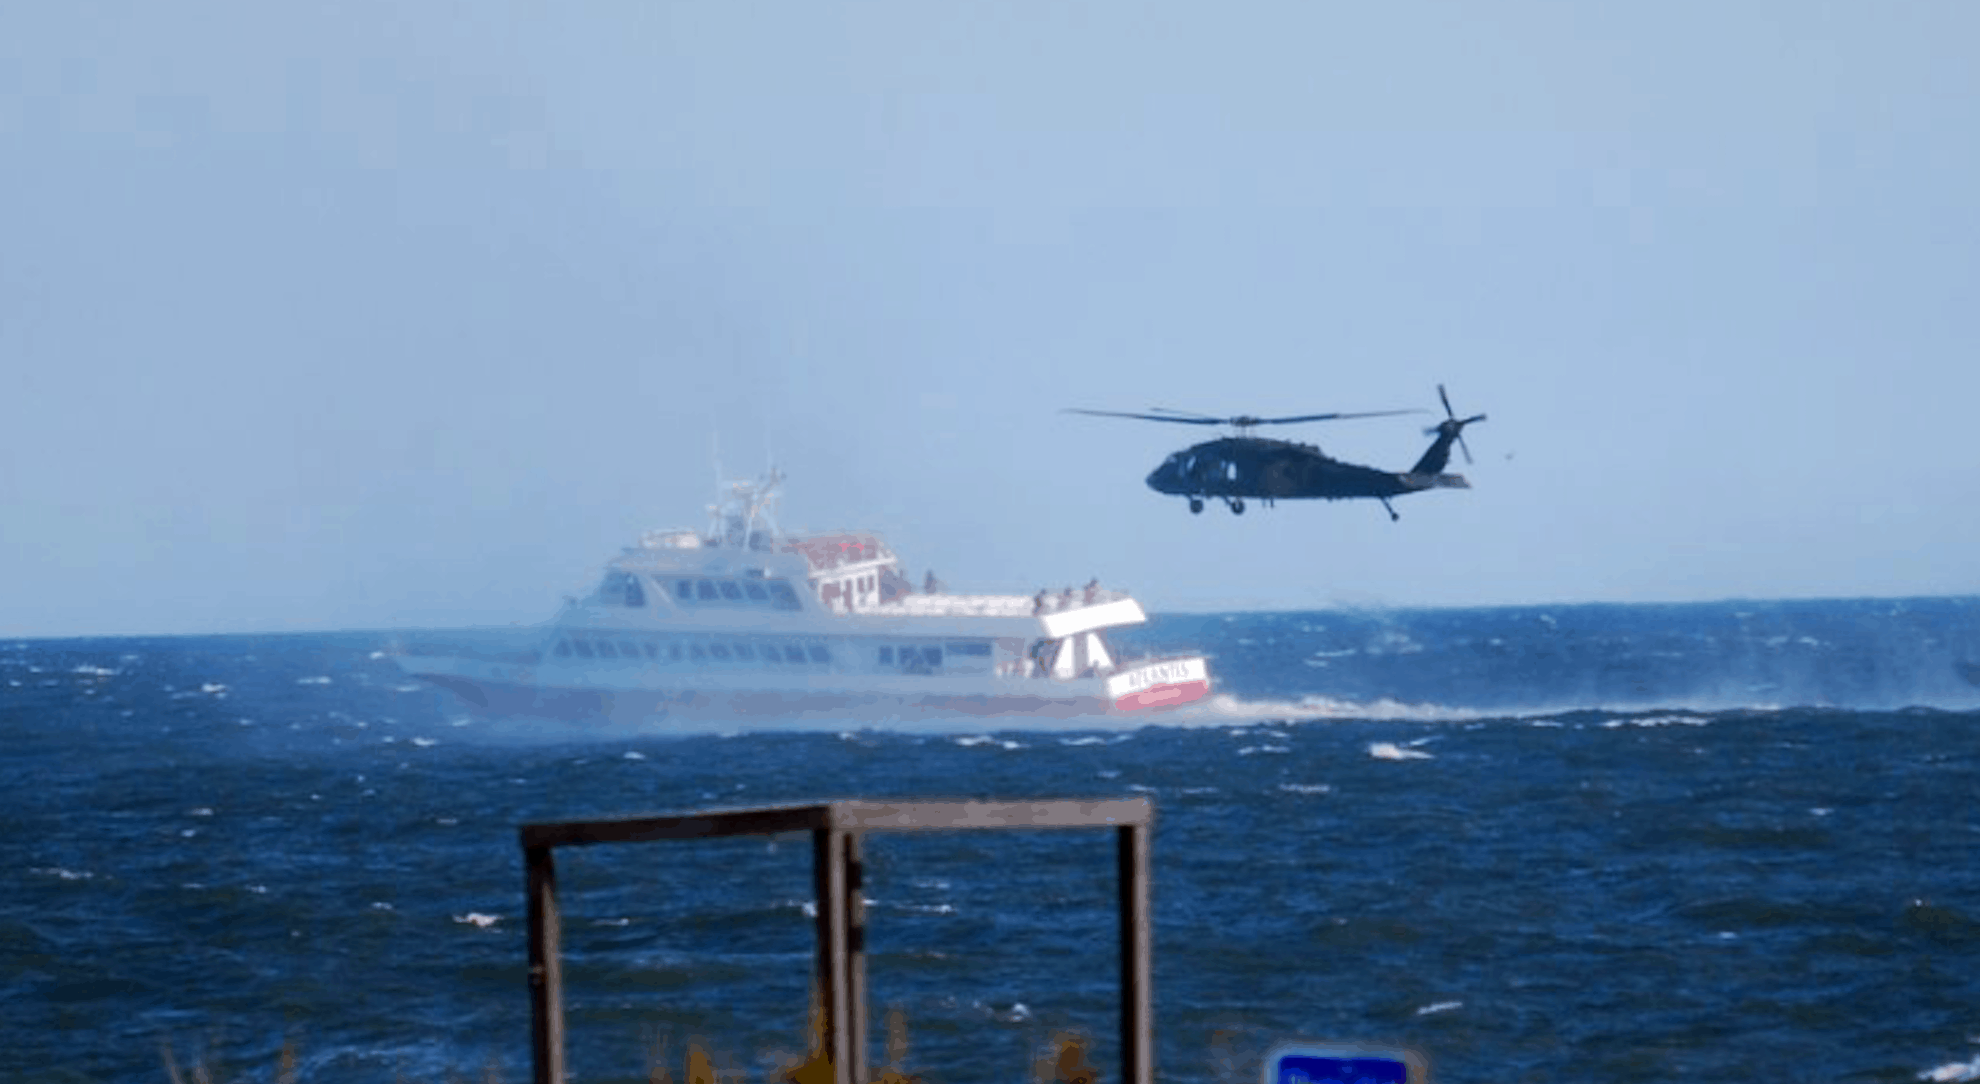 FBI Helicopters Are Training In Cape May